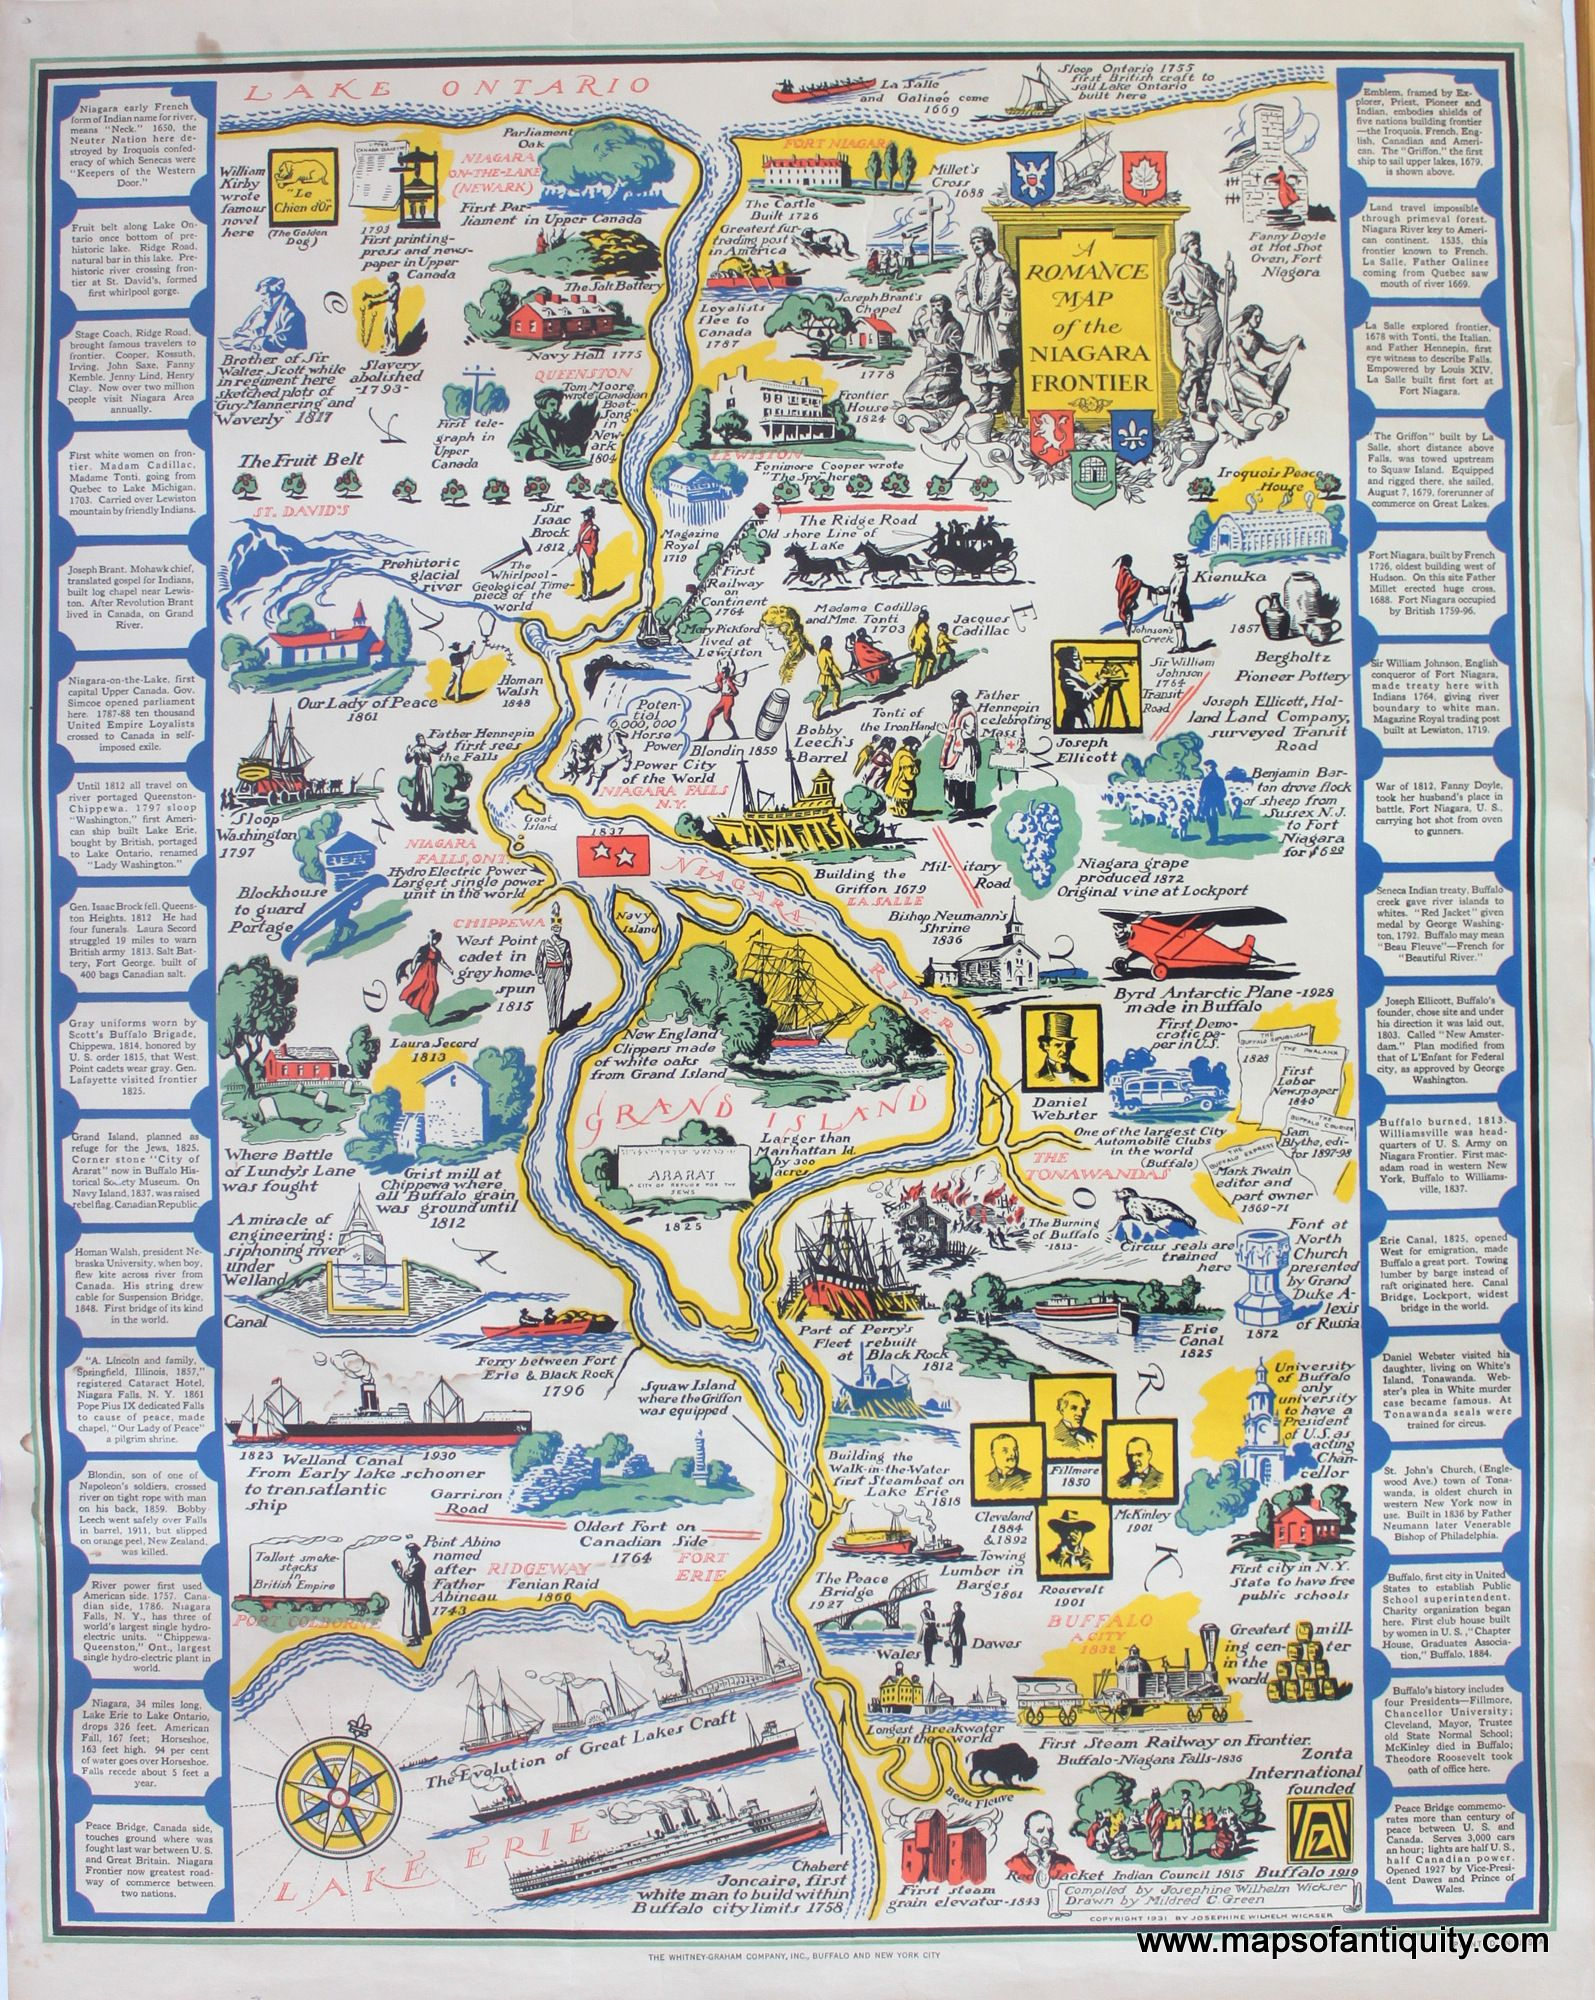 A Romance Map Of The Niagara Frontier Antique Maps And Charts Original Vintage Rare Historical Prints Reproductions